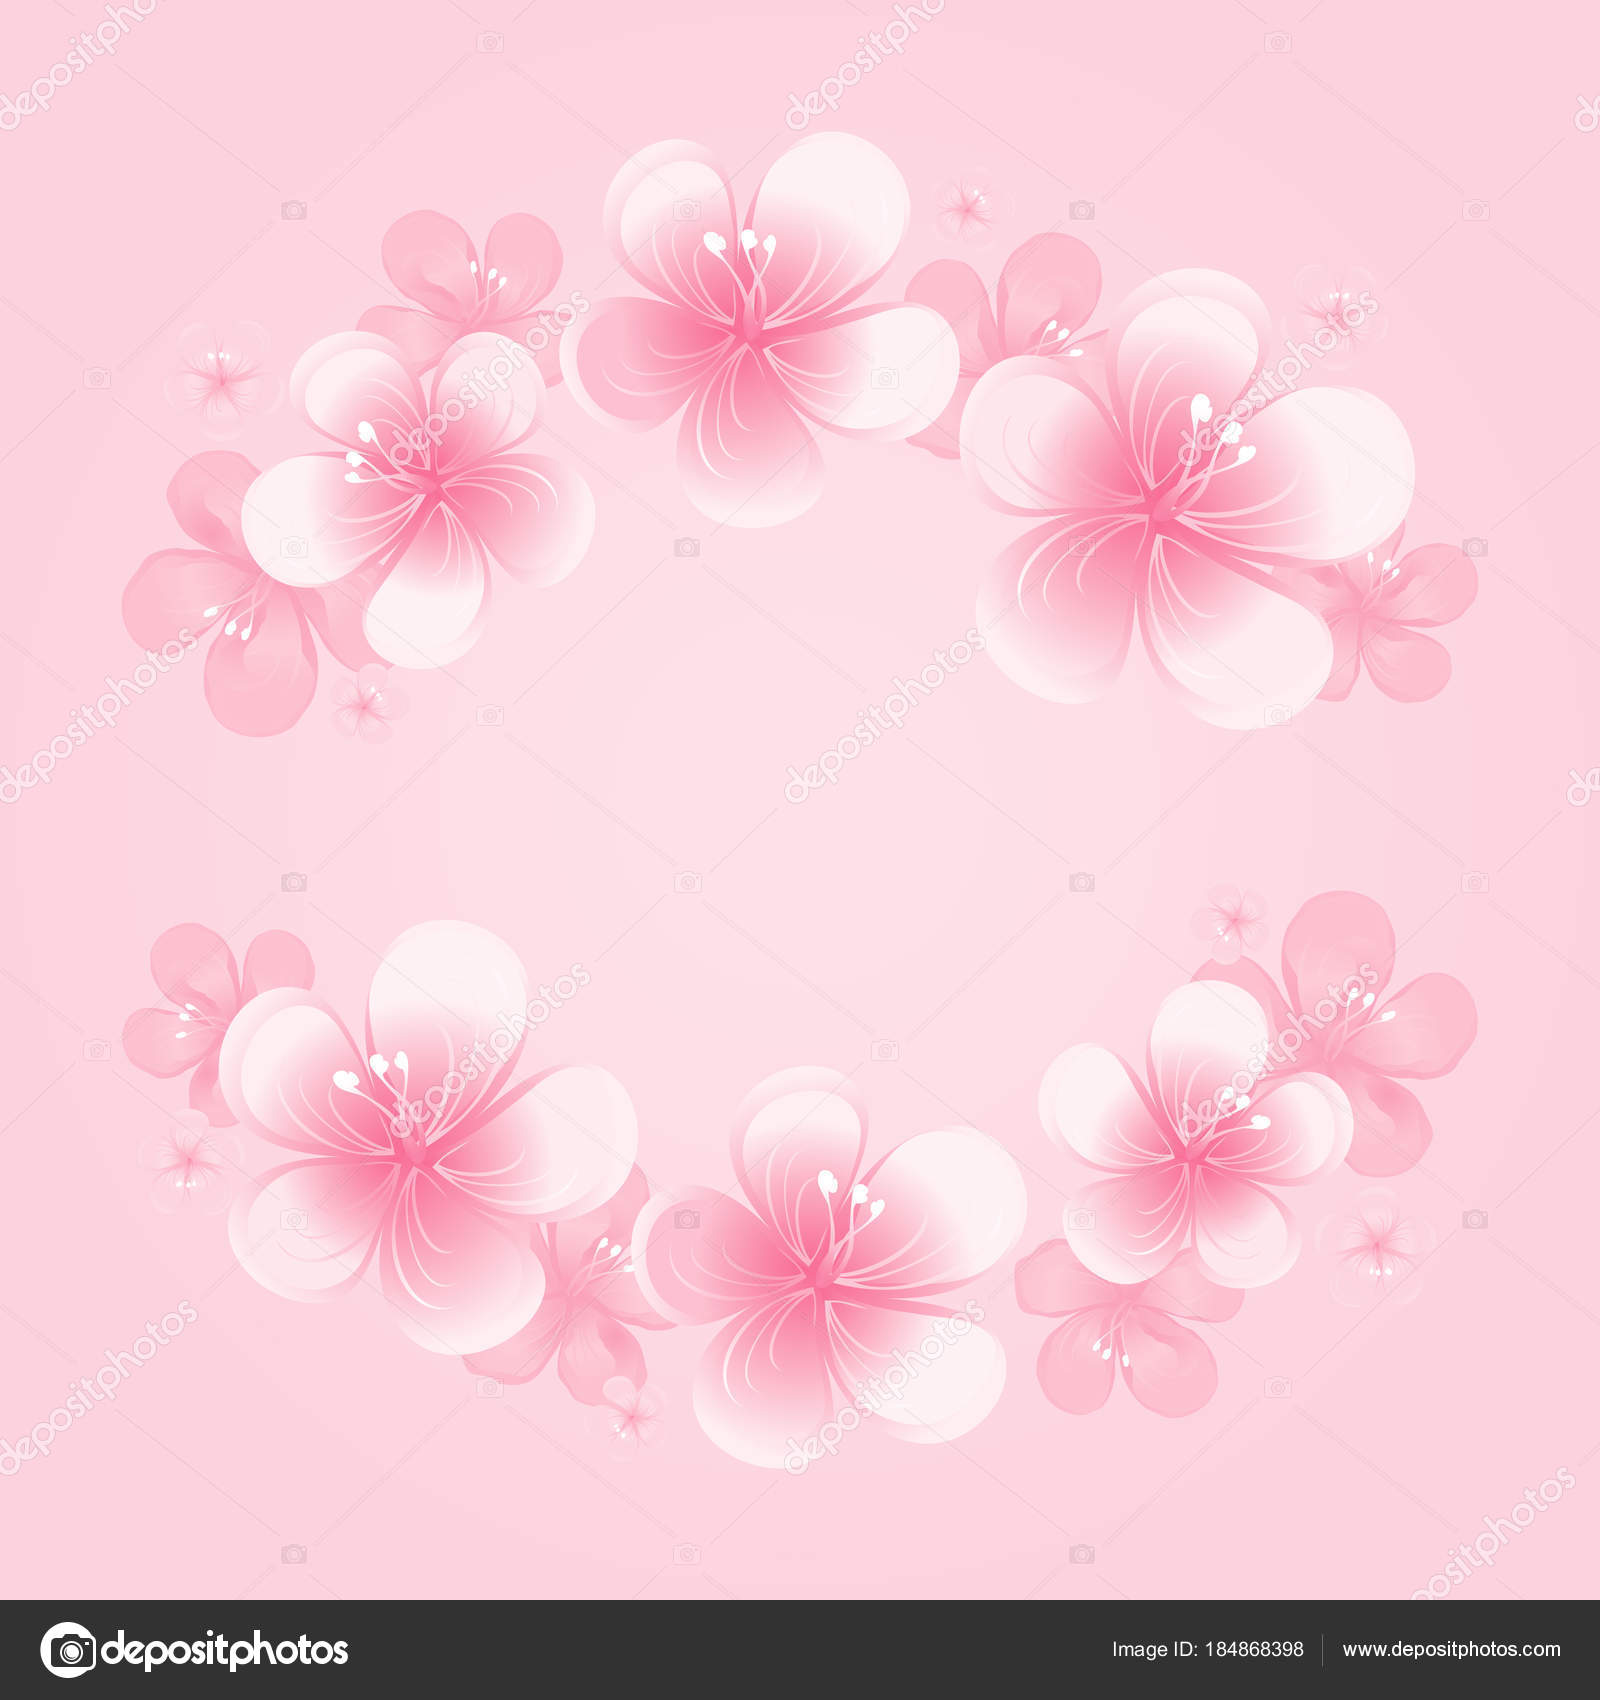 Light Pink Flowers Frame Isolated Pink Background Apple Tree Flowers